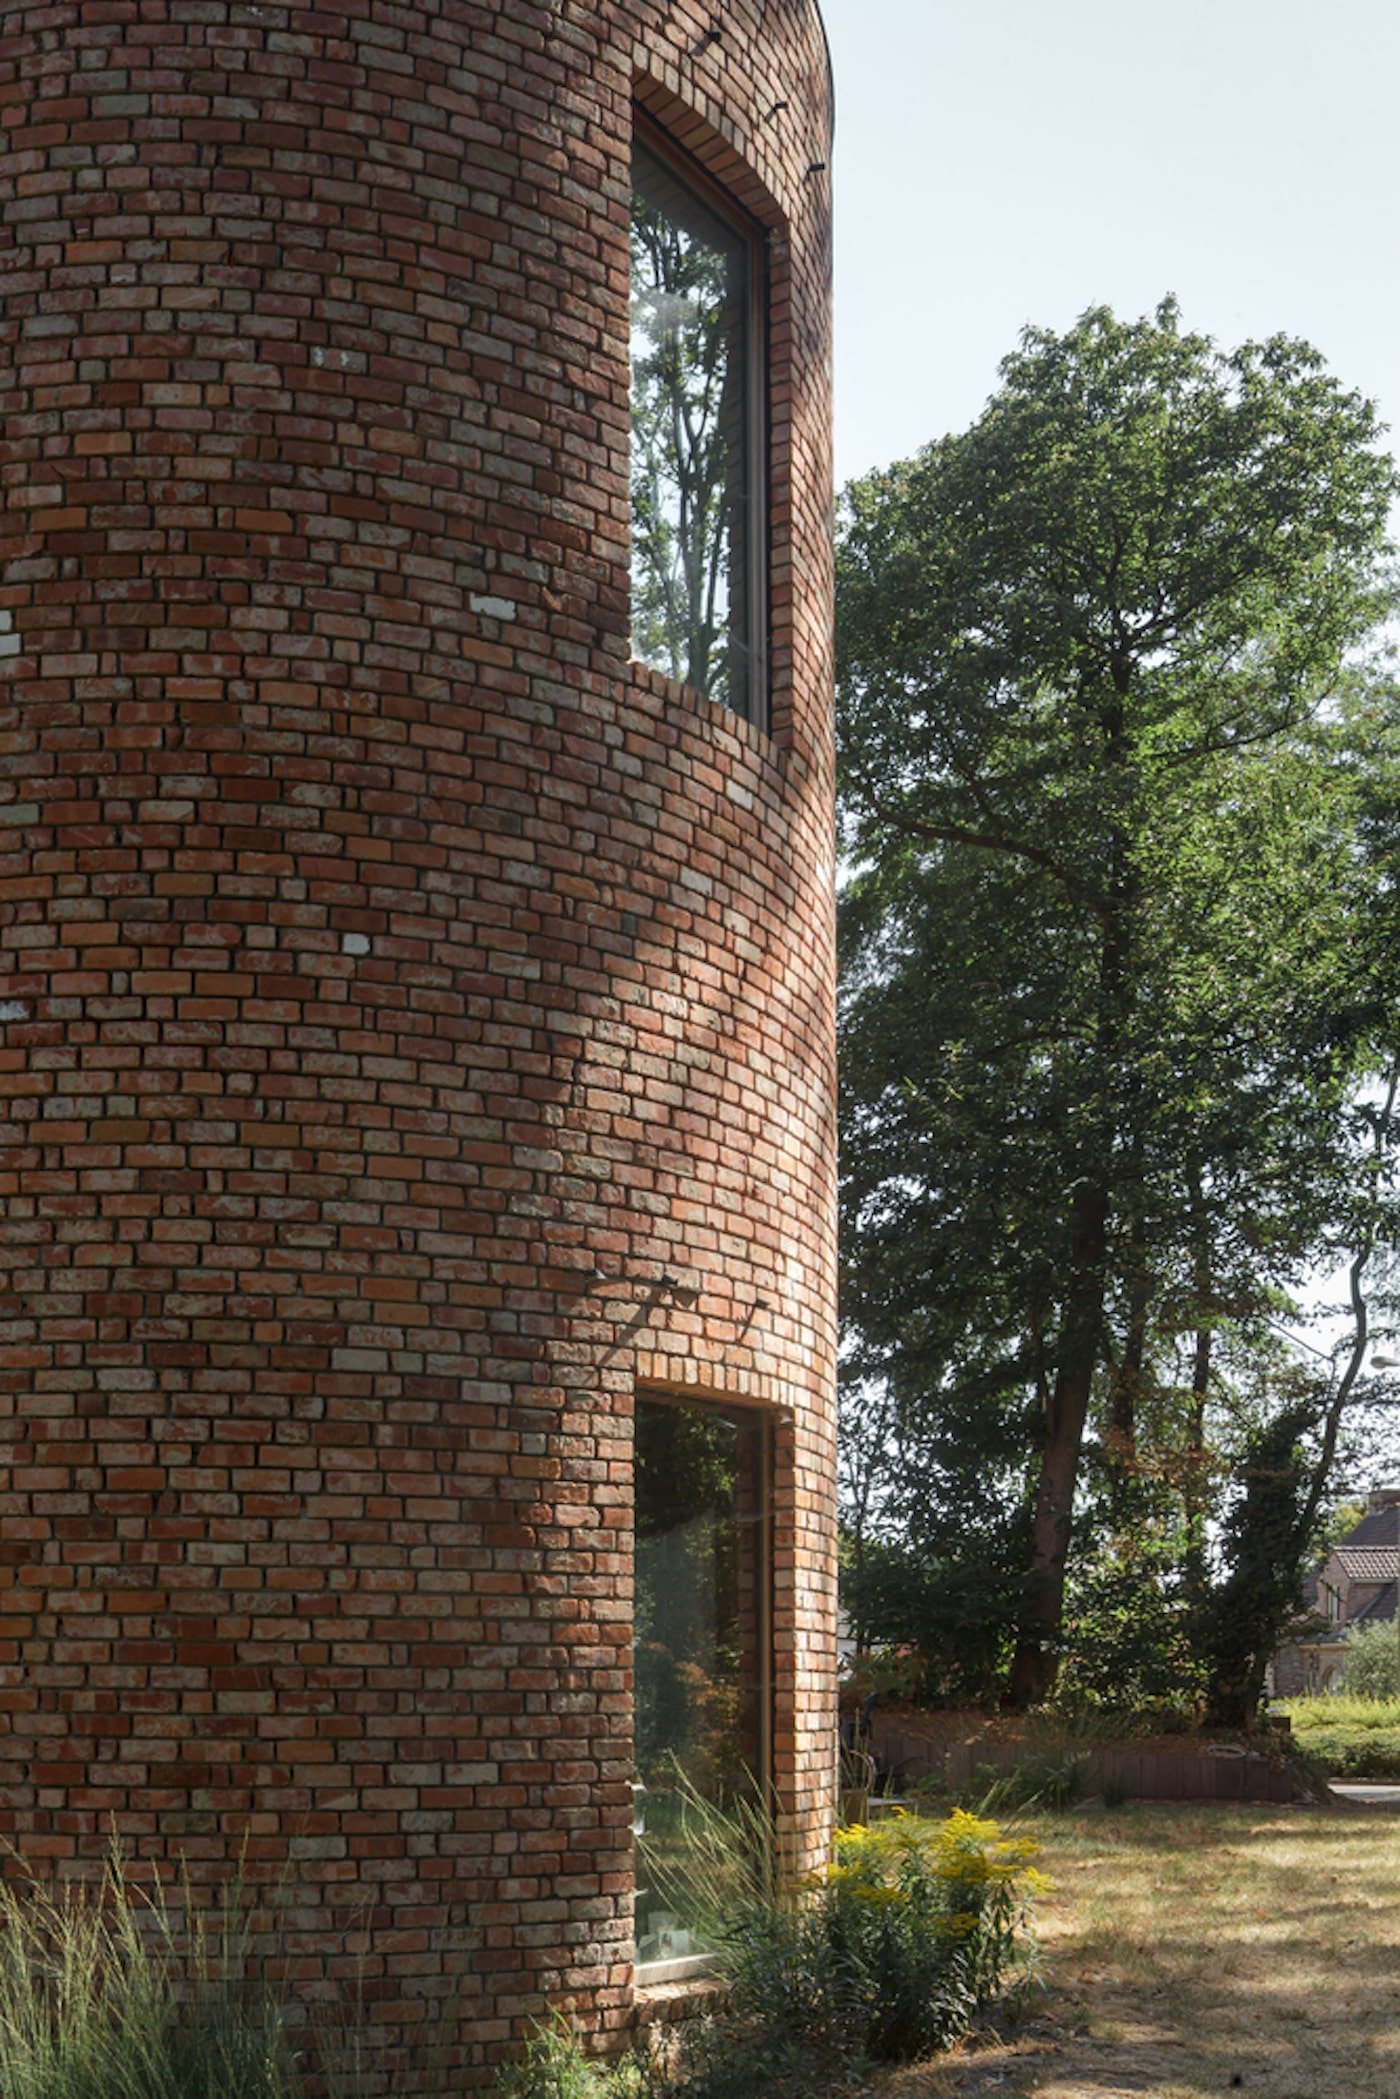 Close up view of recycled brick home